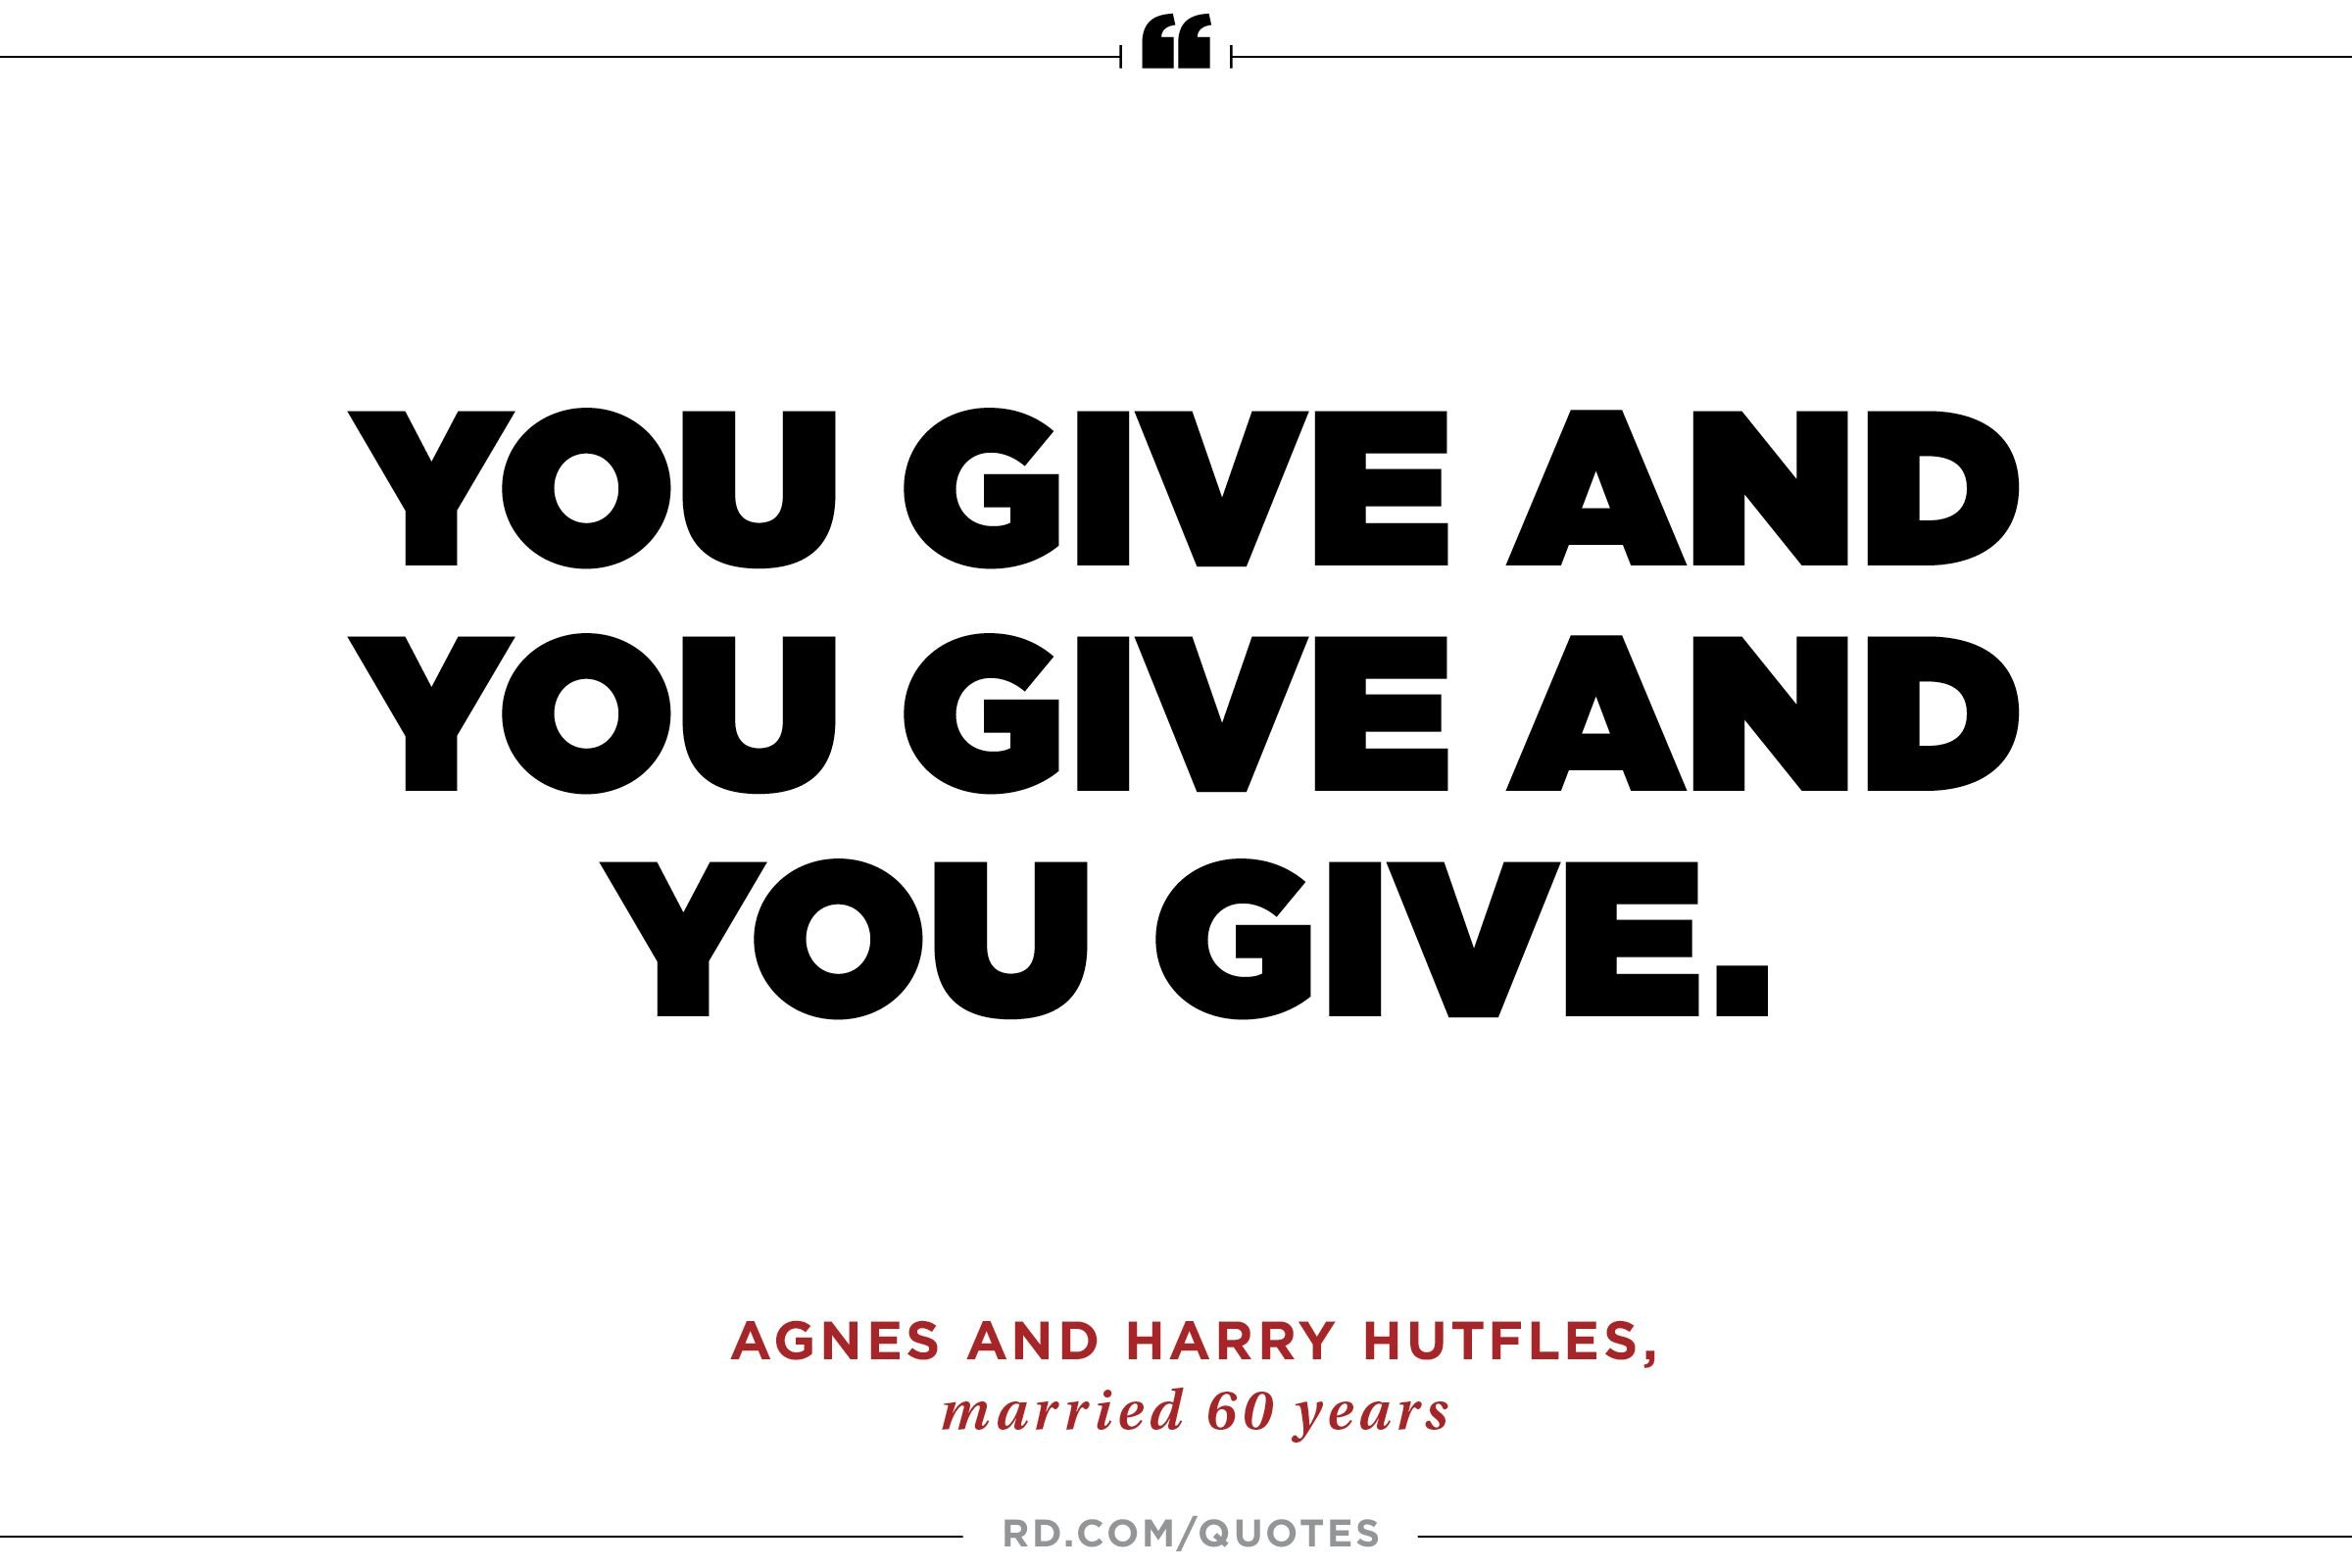 50 Quotes About Love And Marriage : Ideas About 50 Years Of Marriage Quotes, - Valentine Love Quotes